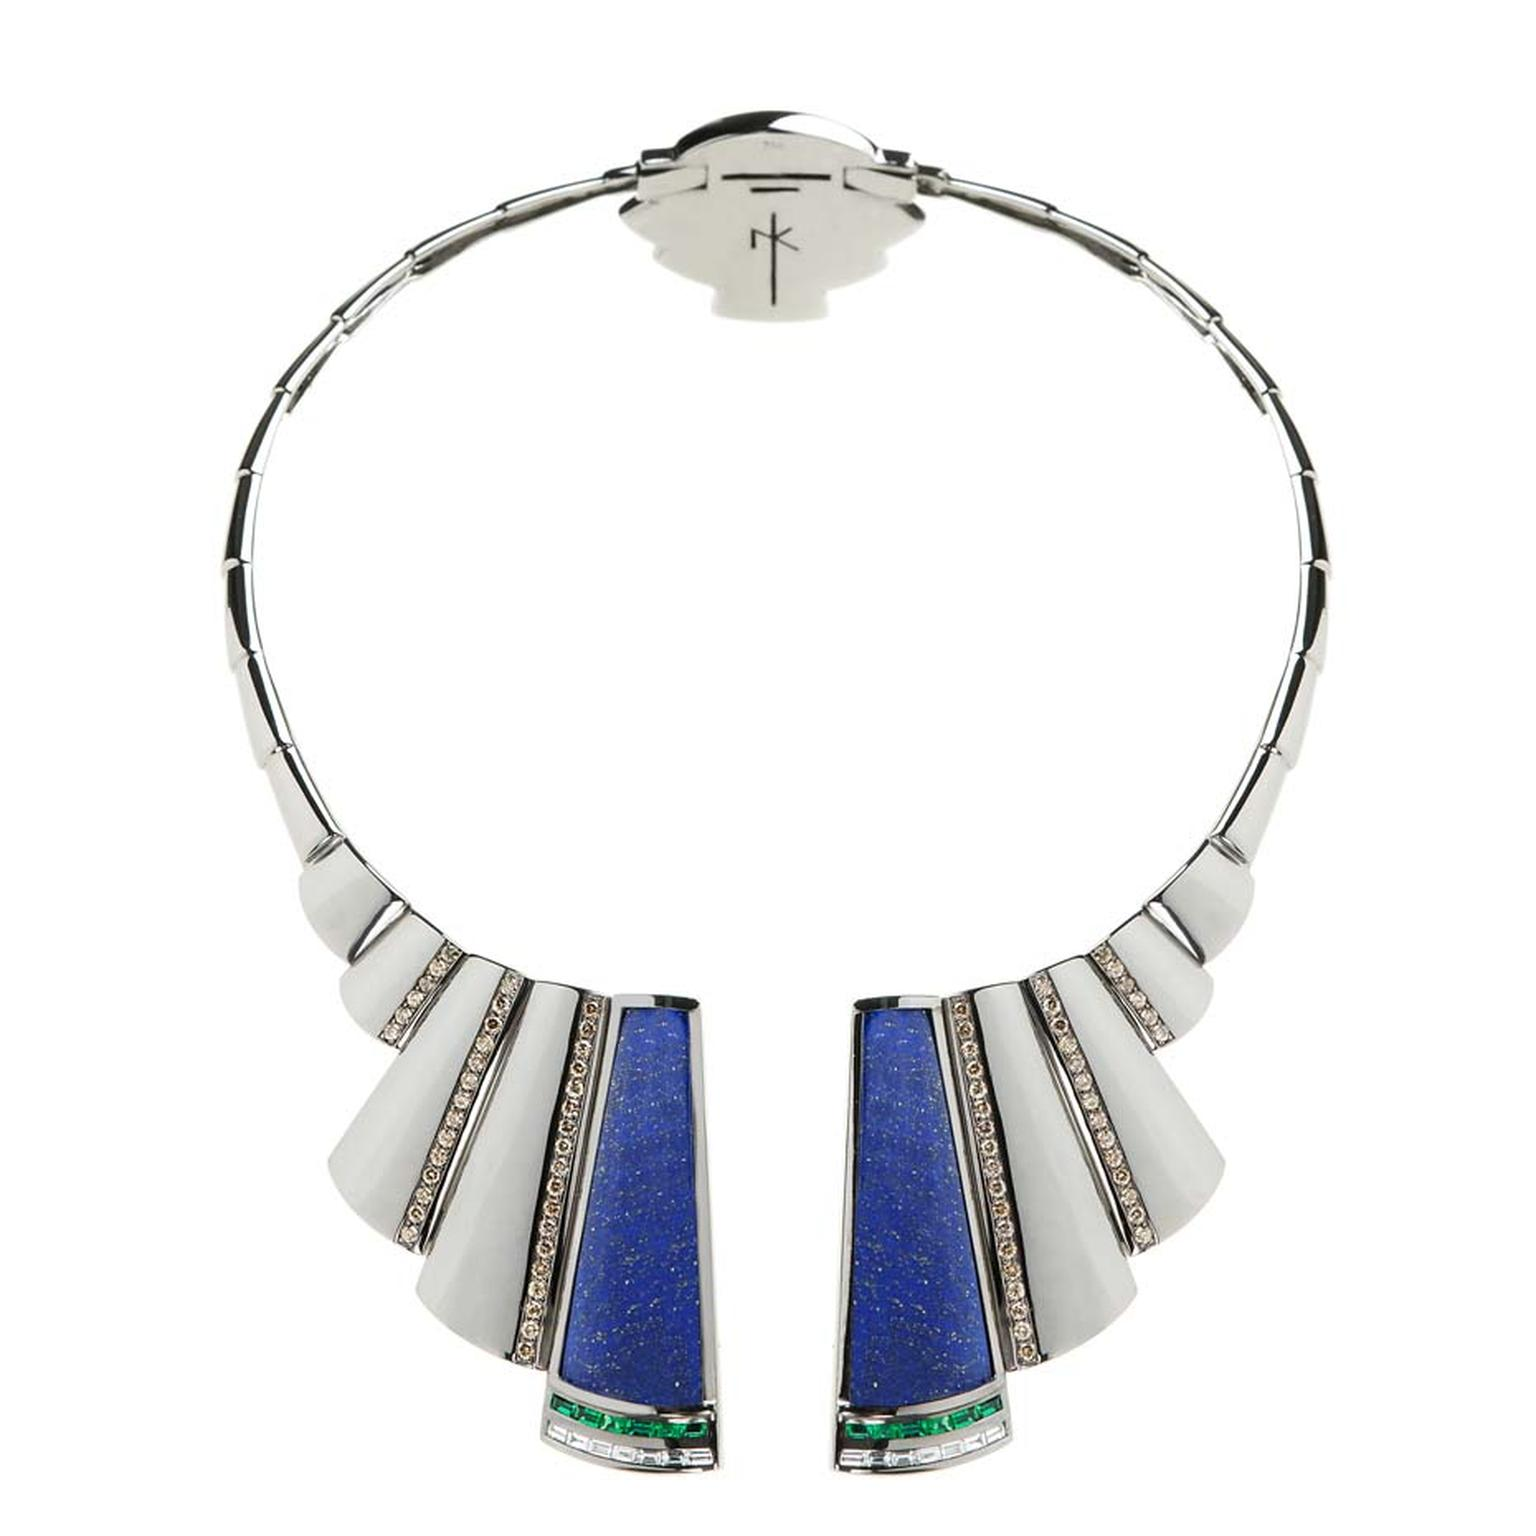 Nikos Koulis Universe necklace with lapis lazuli, brown diamonds and emerald baguettes.